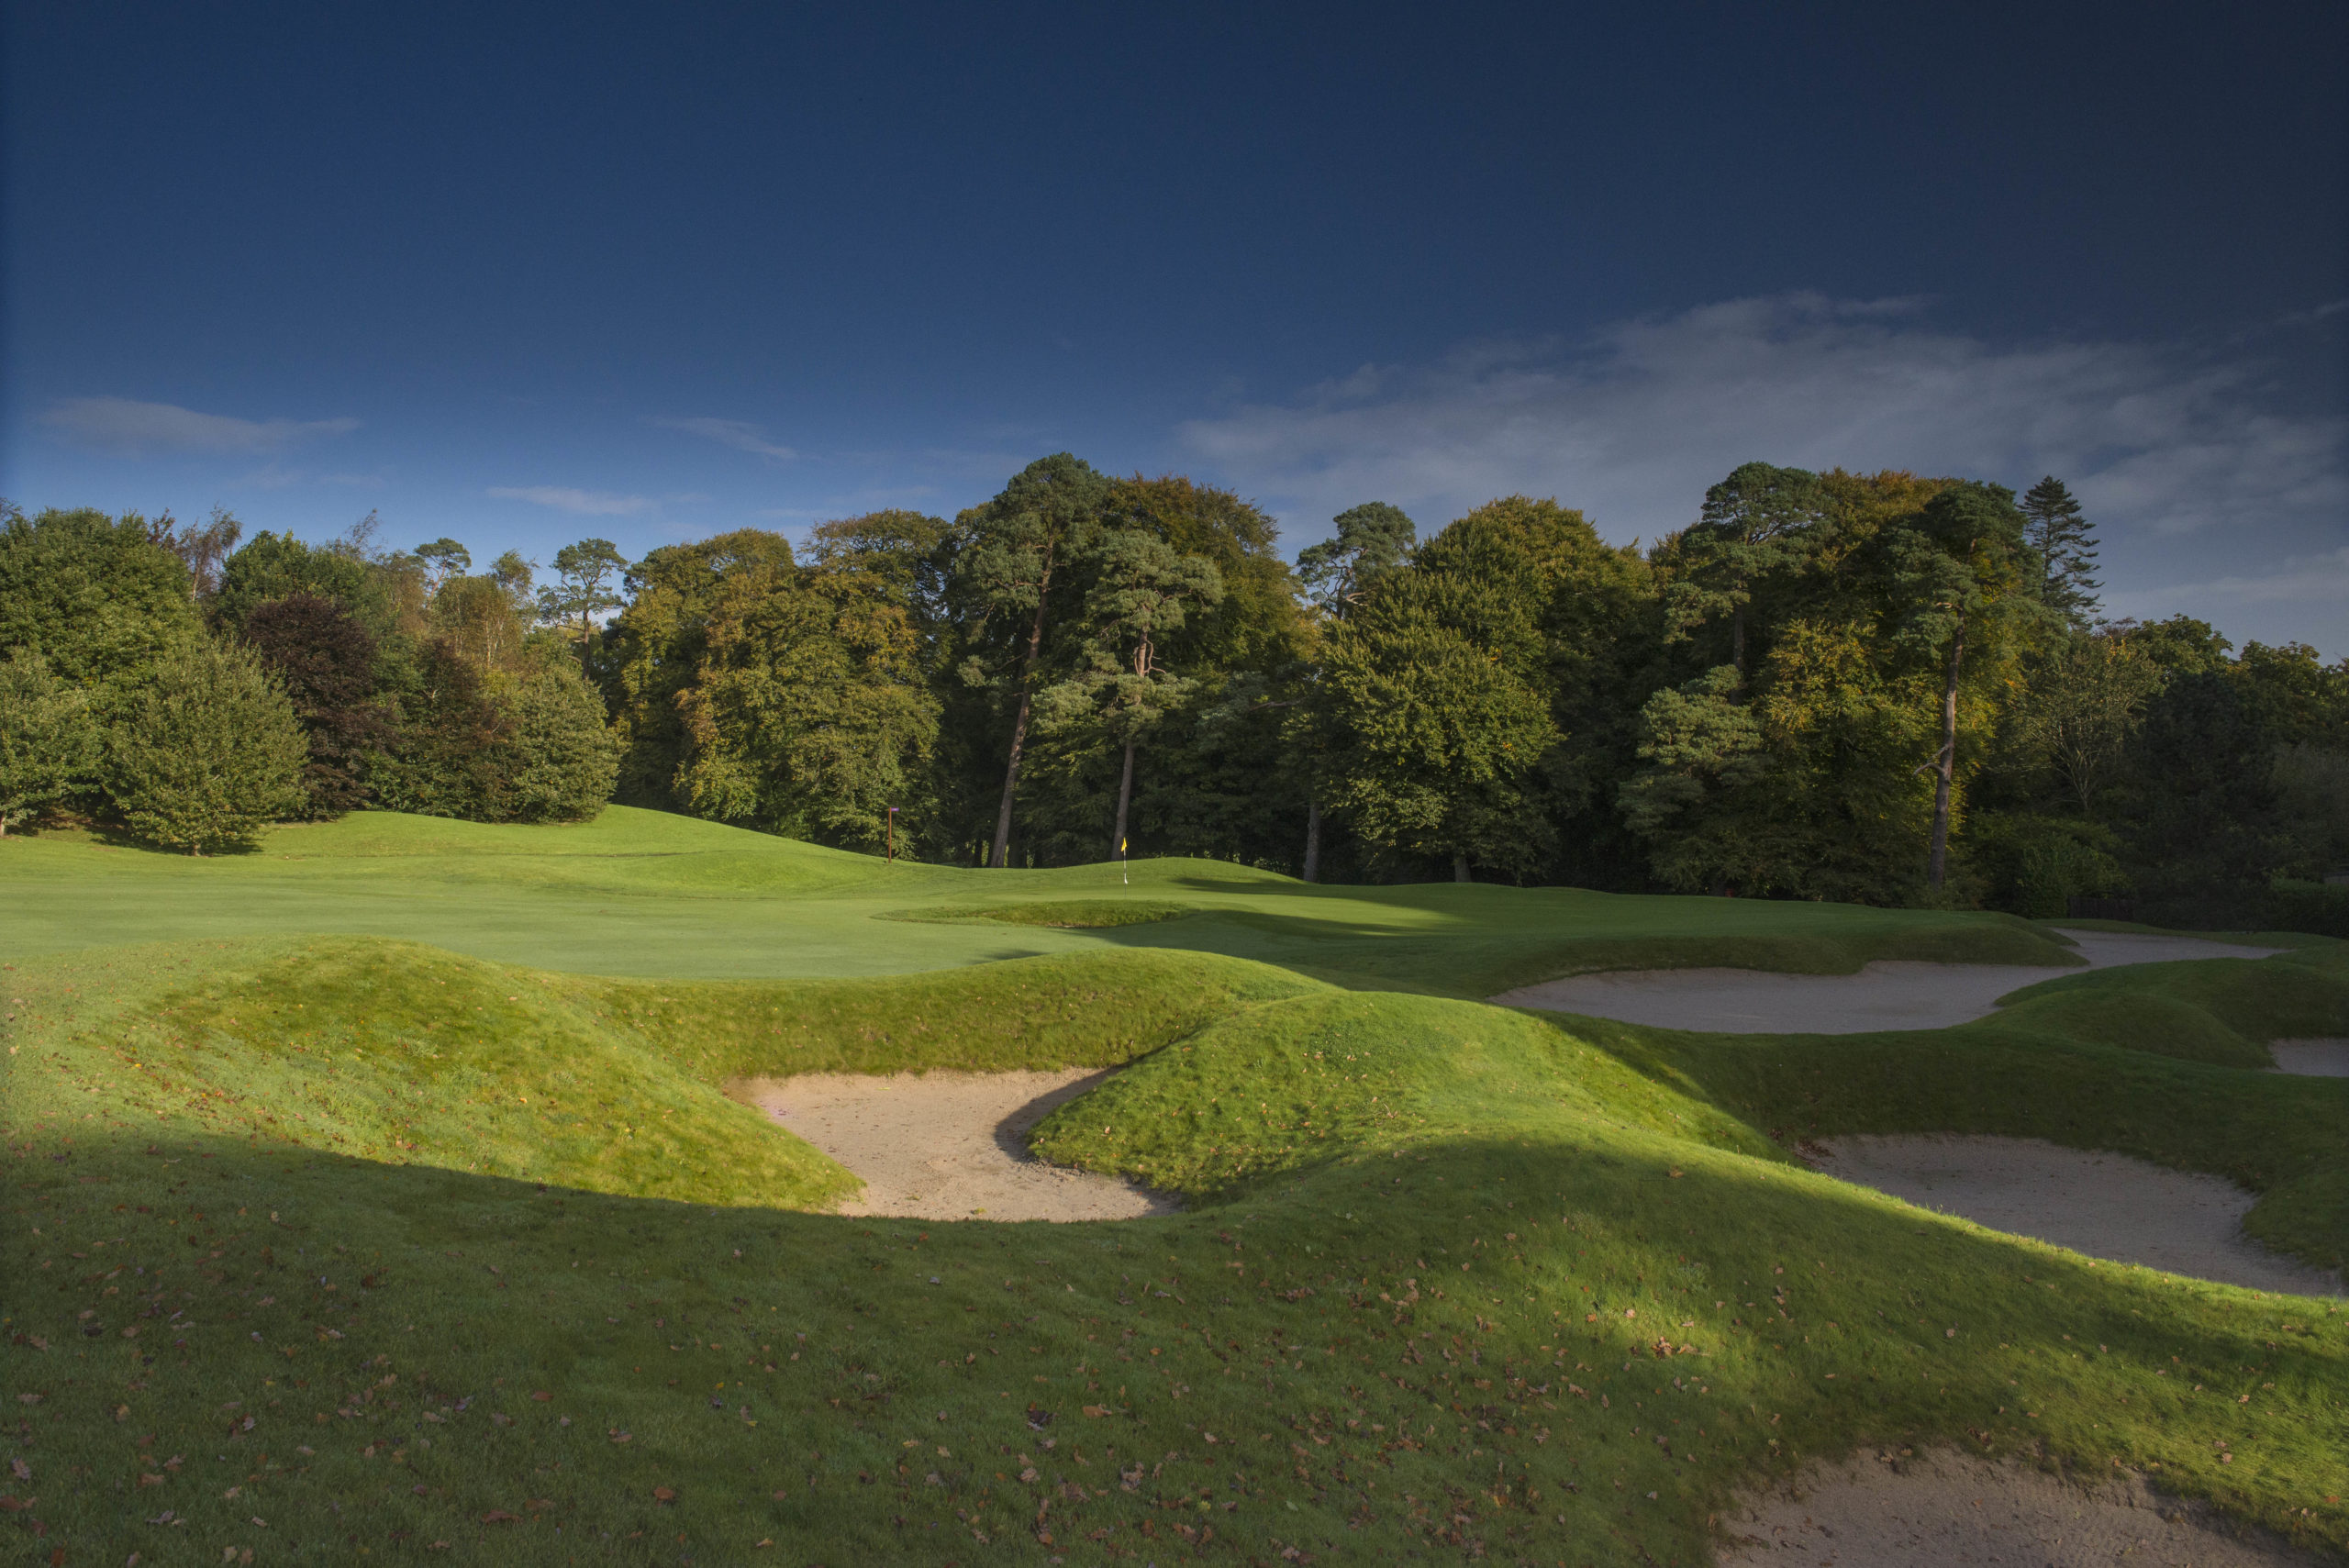 Mount Juliet 10 approach bunkers 8982